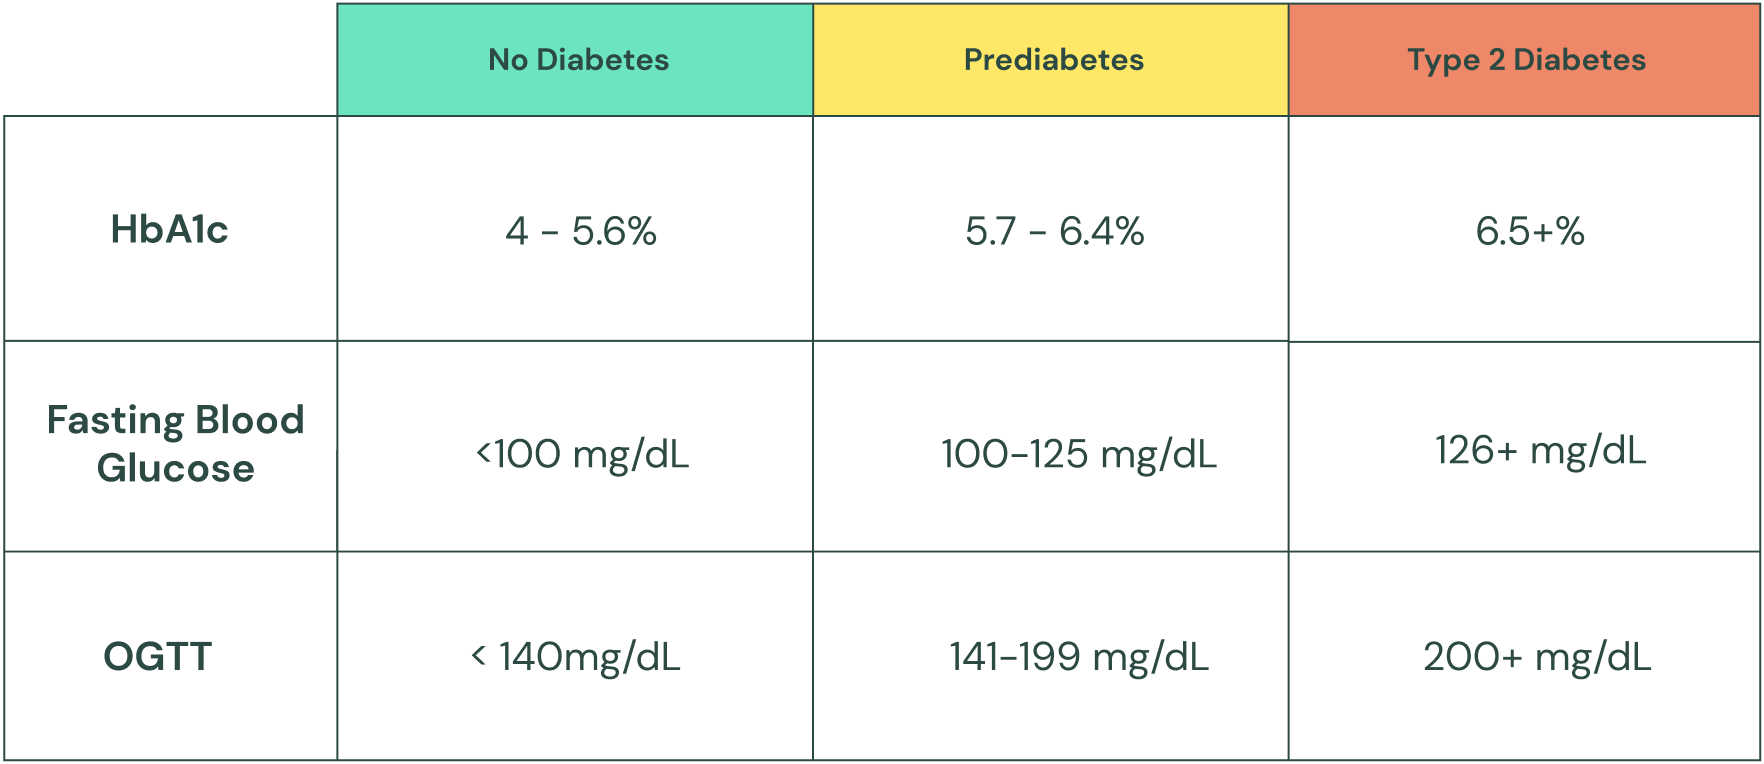 Chart showing ranges for prediabetes and type 2 diabetes based on HbA1c, fasting blood glucose, and OGTT